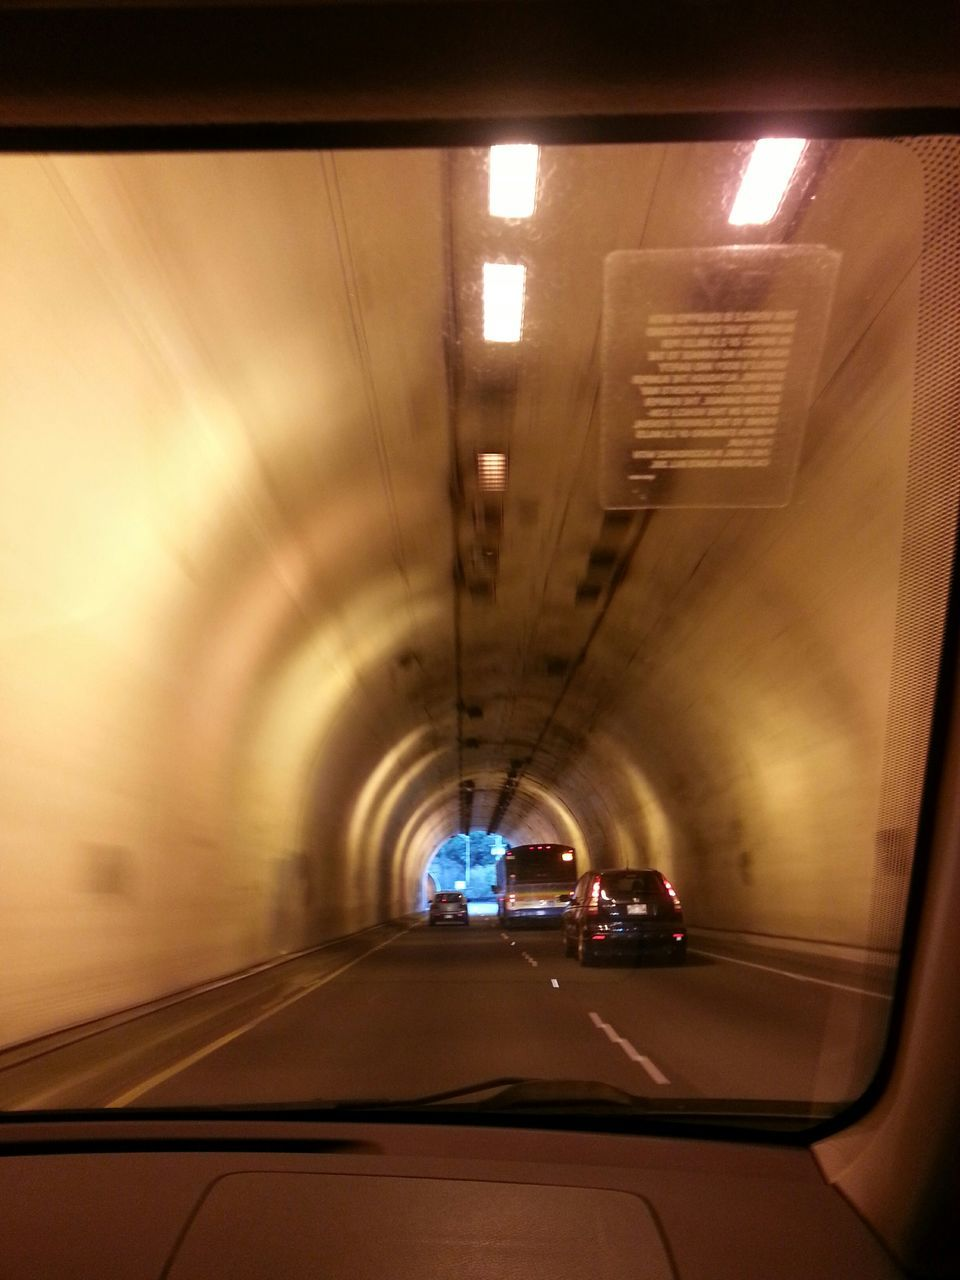 illuminated, car, transportation, the way forward, lighting equipment, land vehicle, windshield, tunnel, indoors, mode of transport, windscreen, car point of view, road, no people, built structure, night, architecture